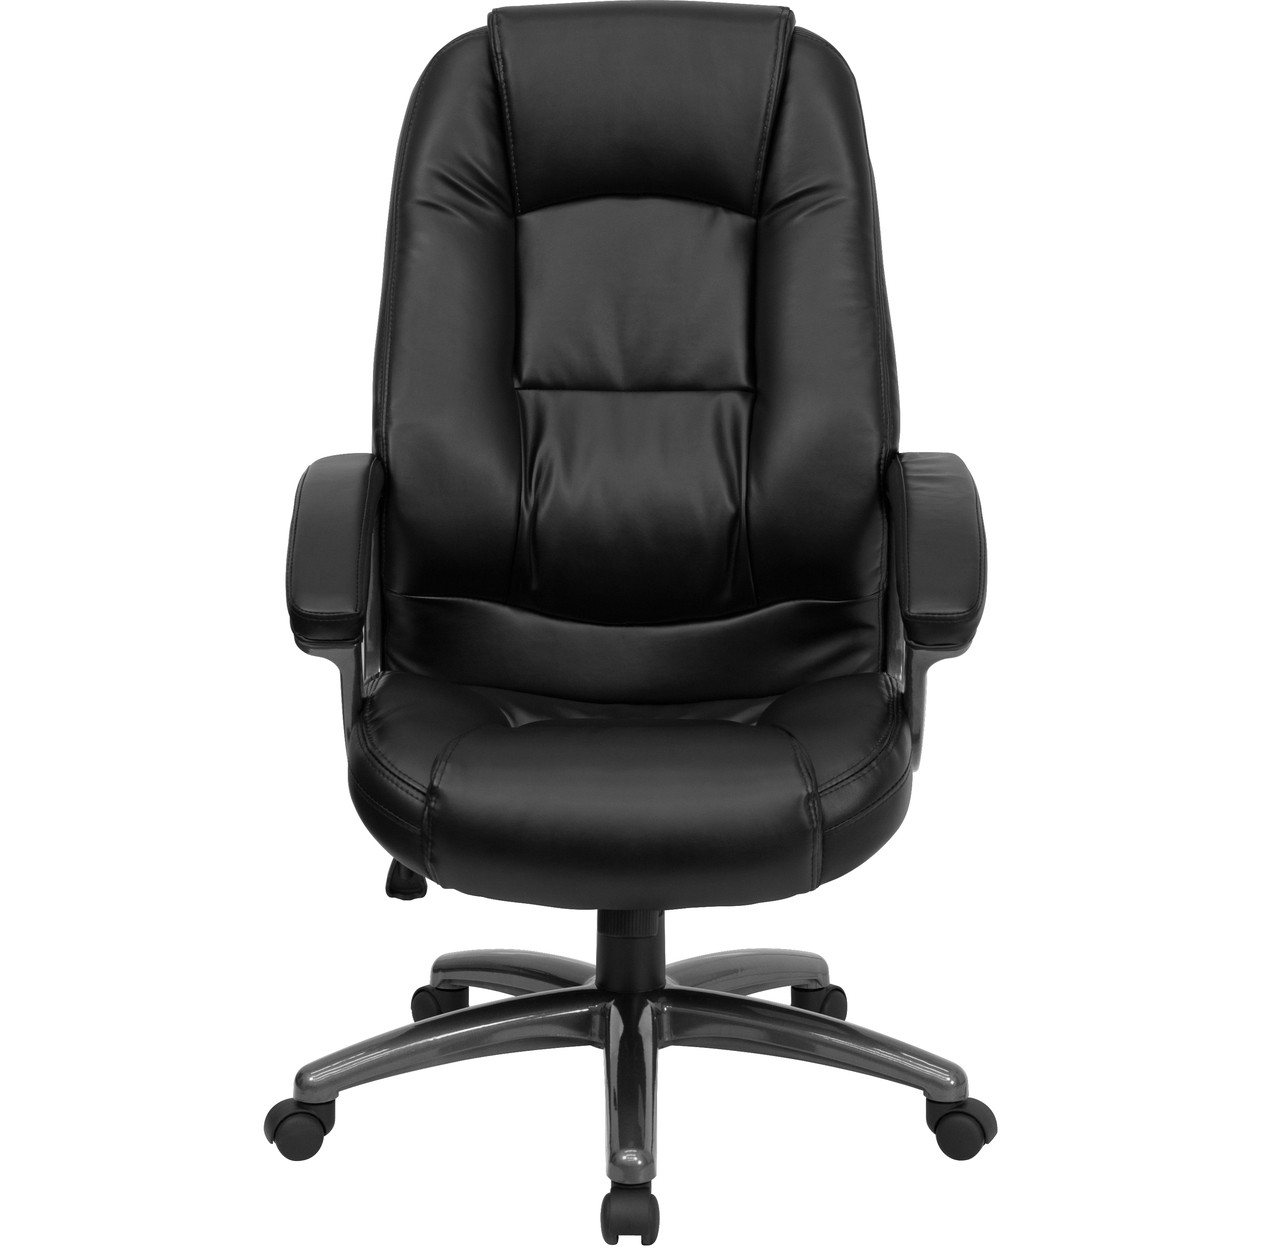 black leather office chair high back outdoor directors chairs flash furniture executive swivel ergonomic image 1